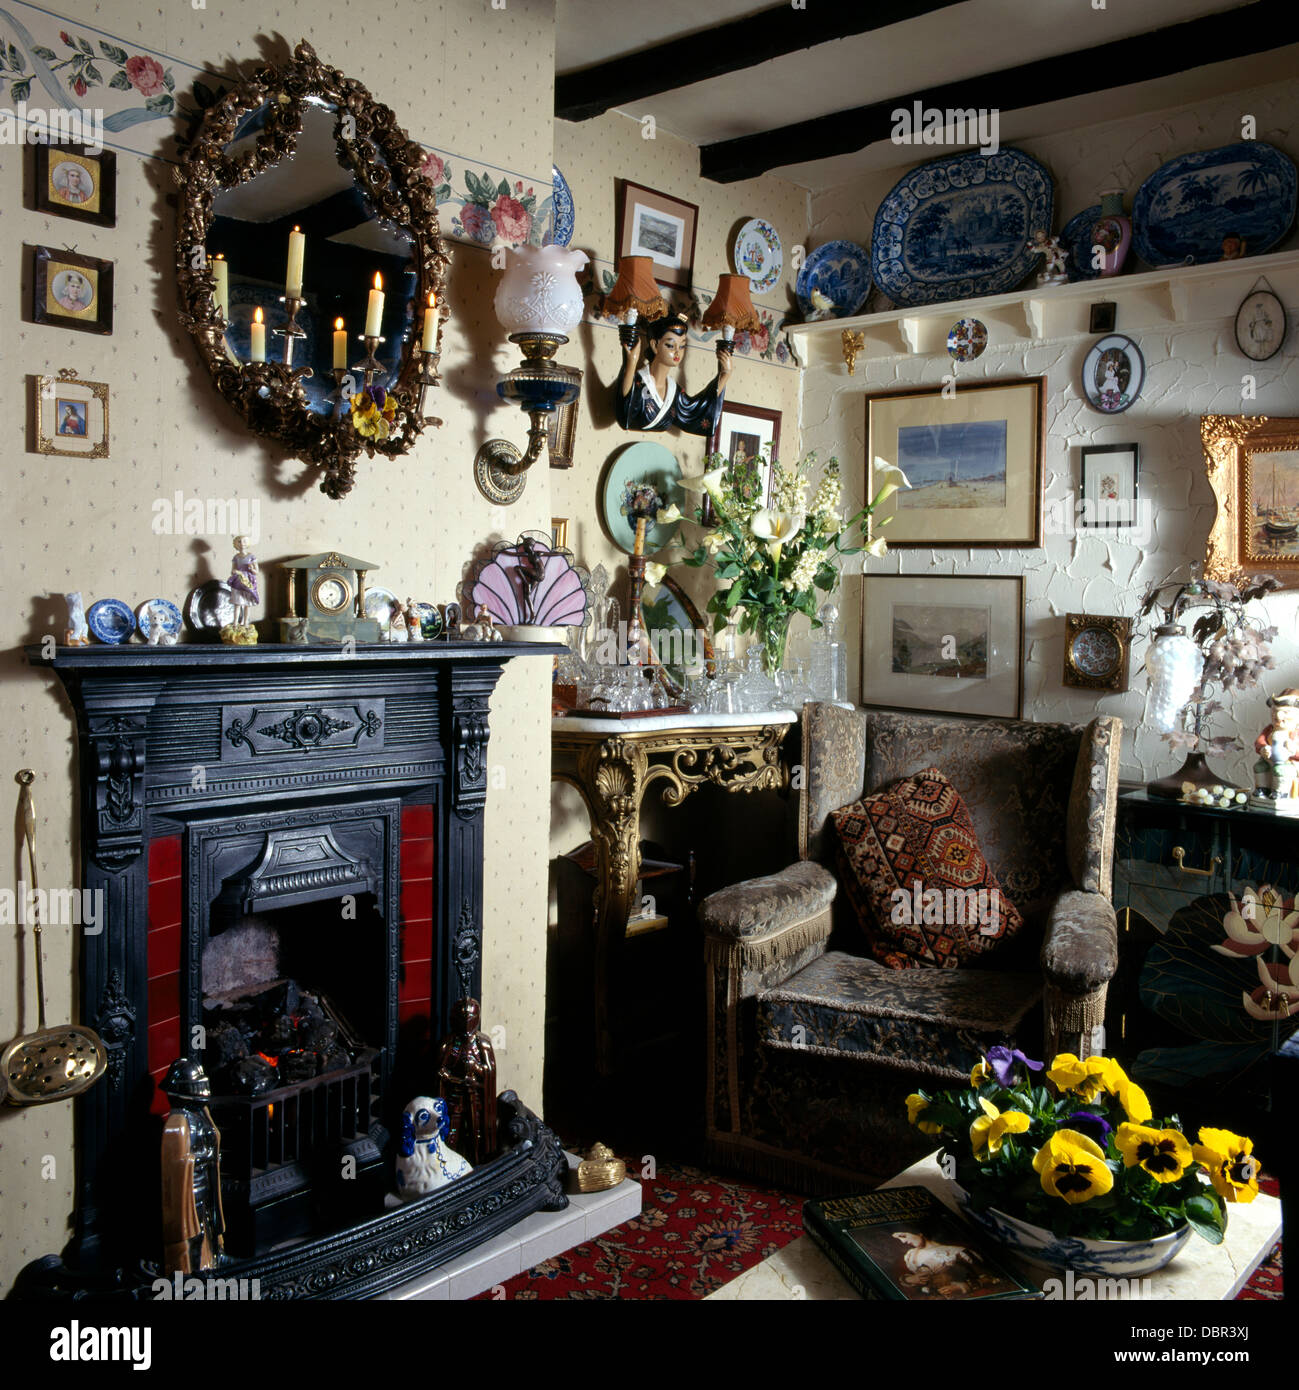 Girandole Mirror With Lighted Candles Above Cast Iron Fireplace In Small Cluttered Victorian Living